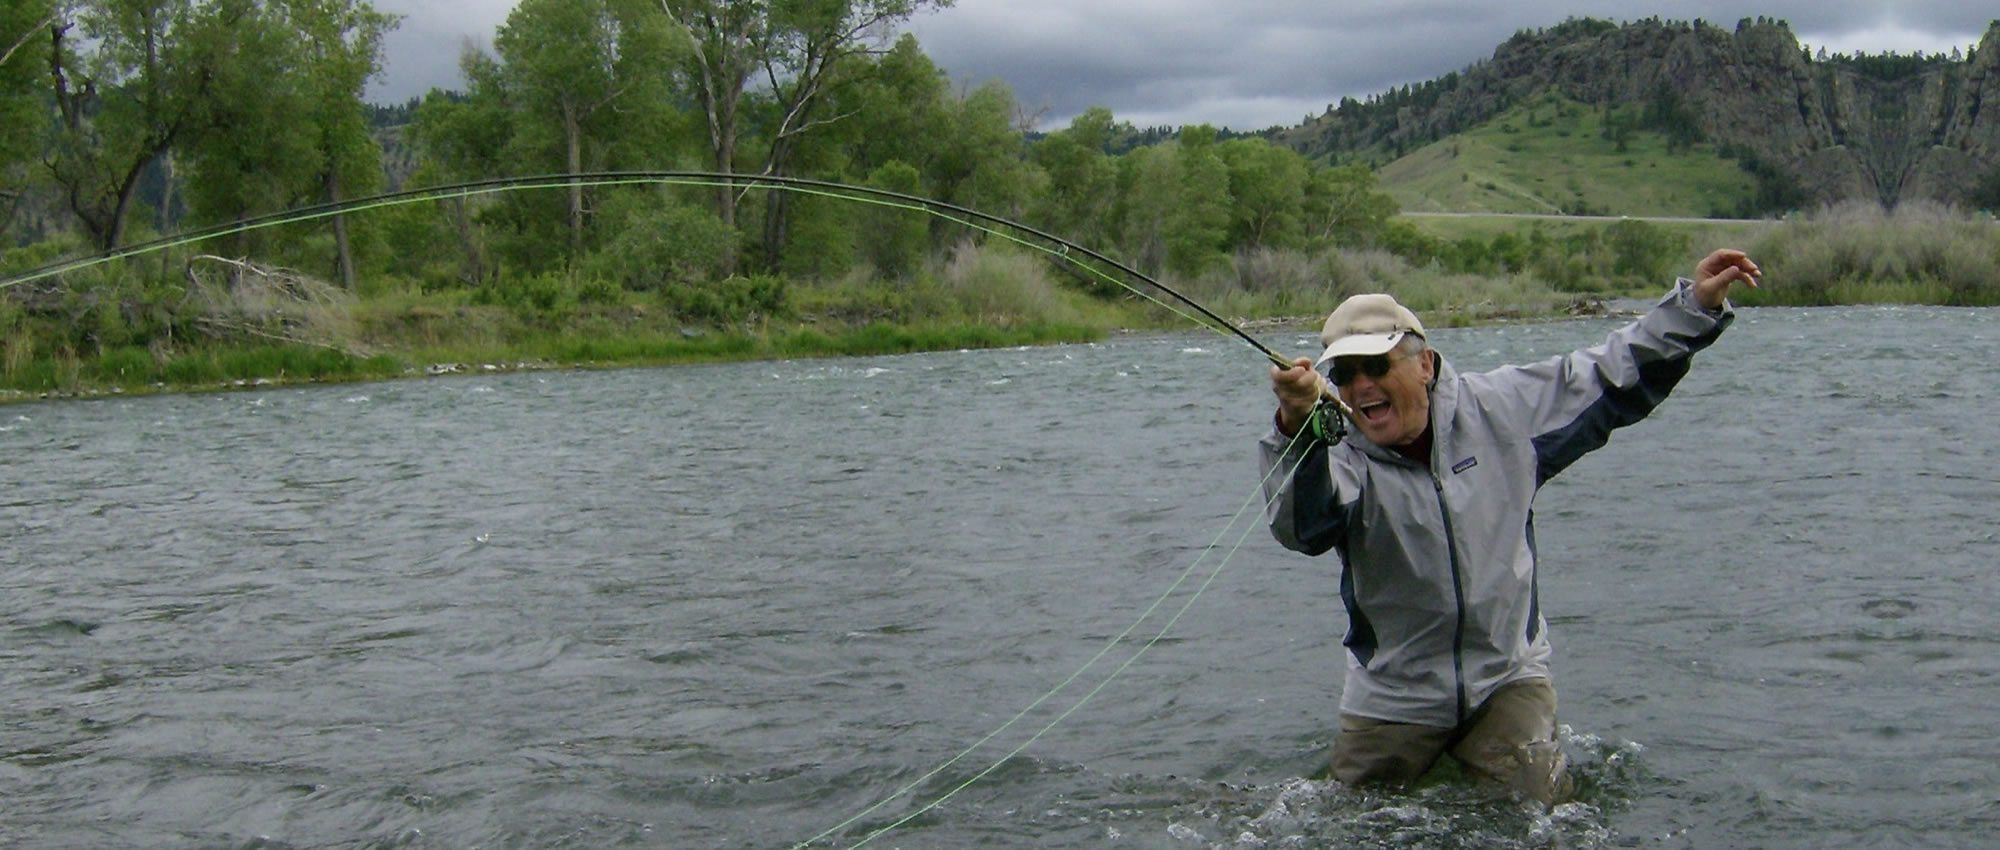 Great Waters Inn Great Waters Inn Big Hole River Fly Fishing - Affordable guide service